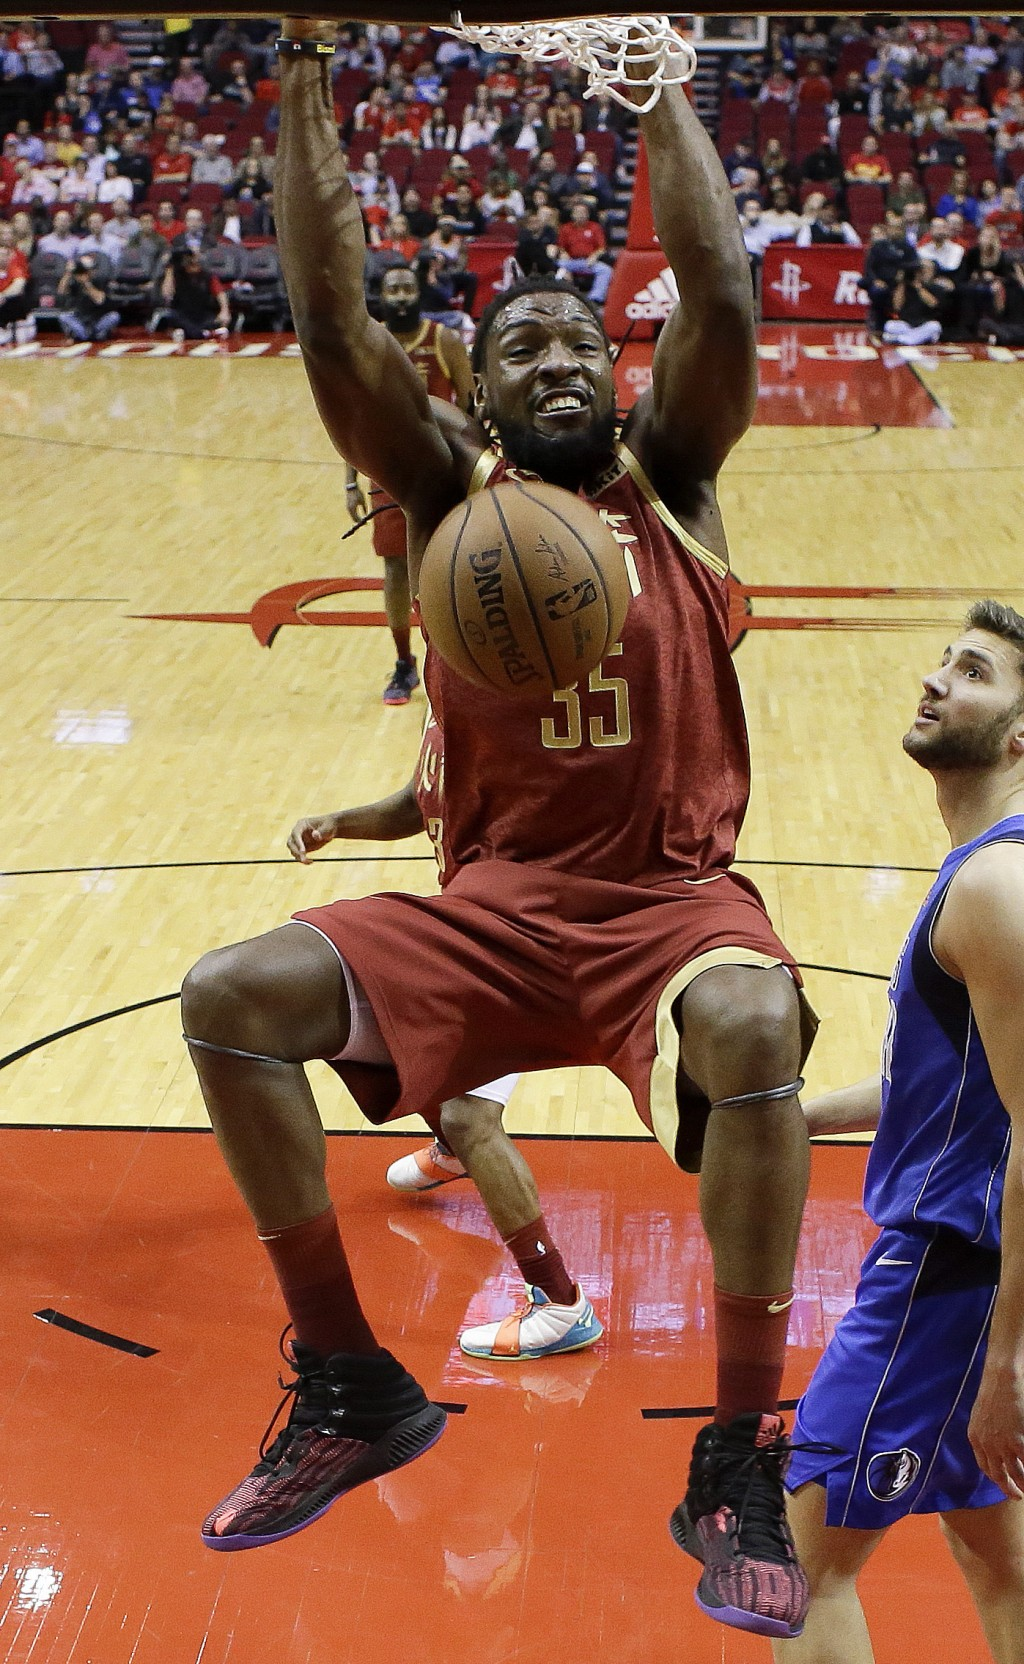 Houston Rockets forward Kenneth Faried dunks during the first half of an NBA basketball game against the Dallas Mavericks, Monday, Feb. 11, 2019, in H...